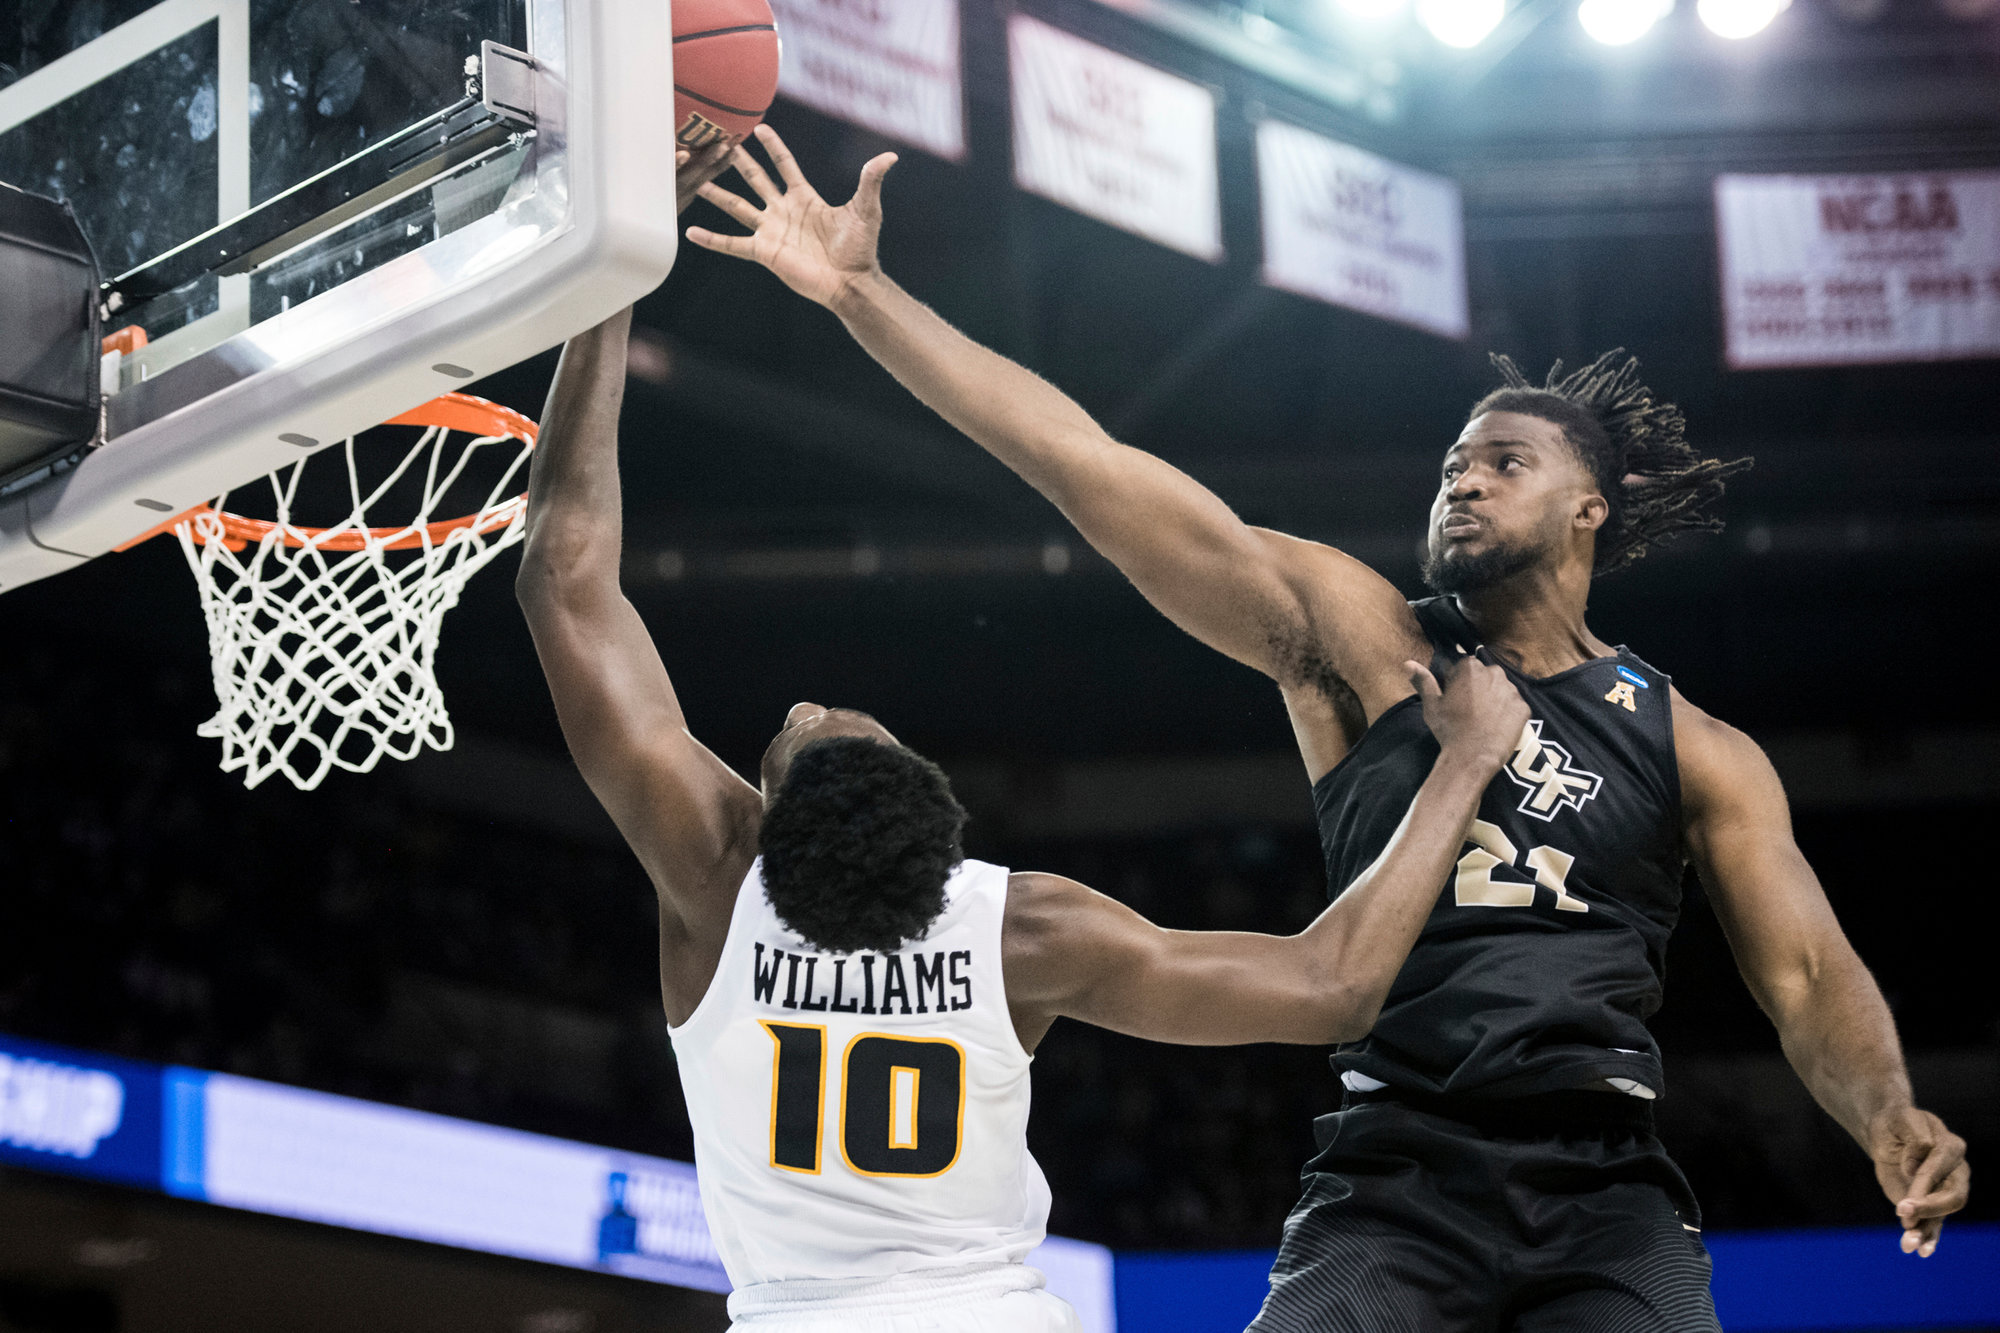 UCF will continue to rely on size in the NCAA Tournament